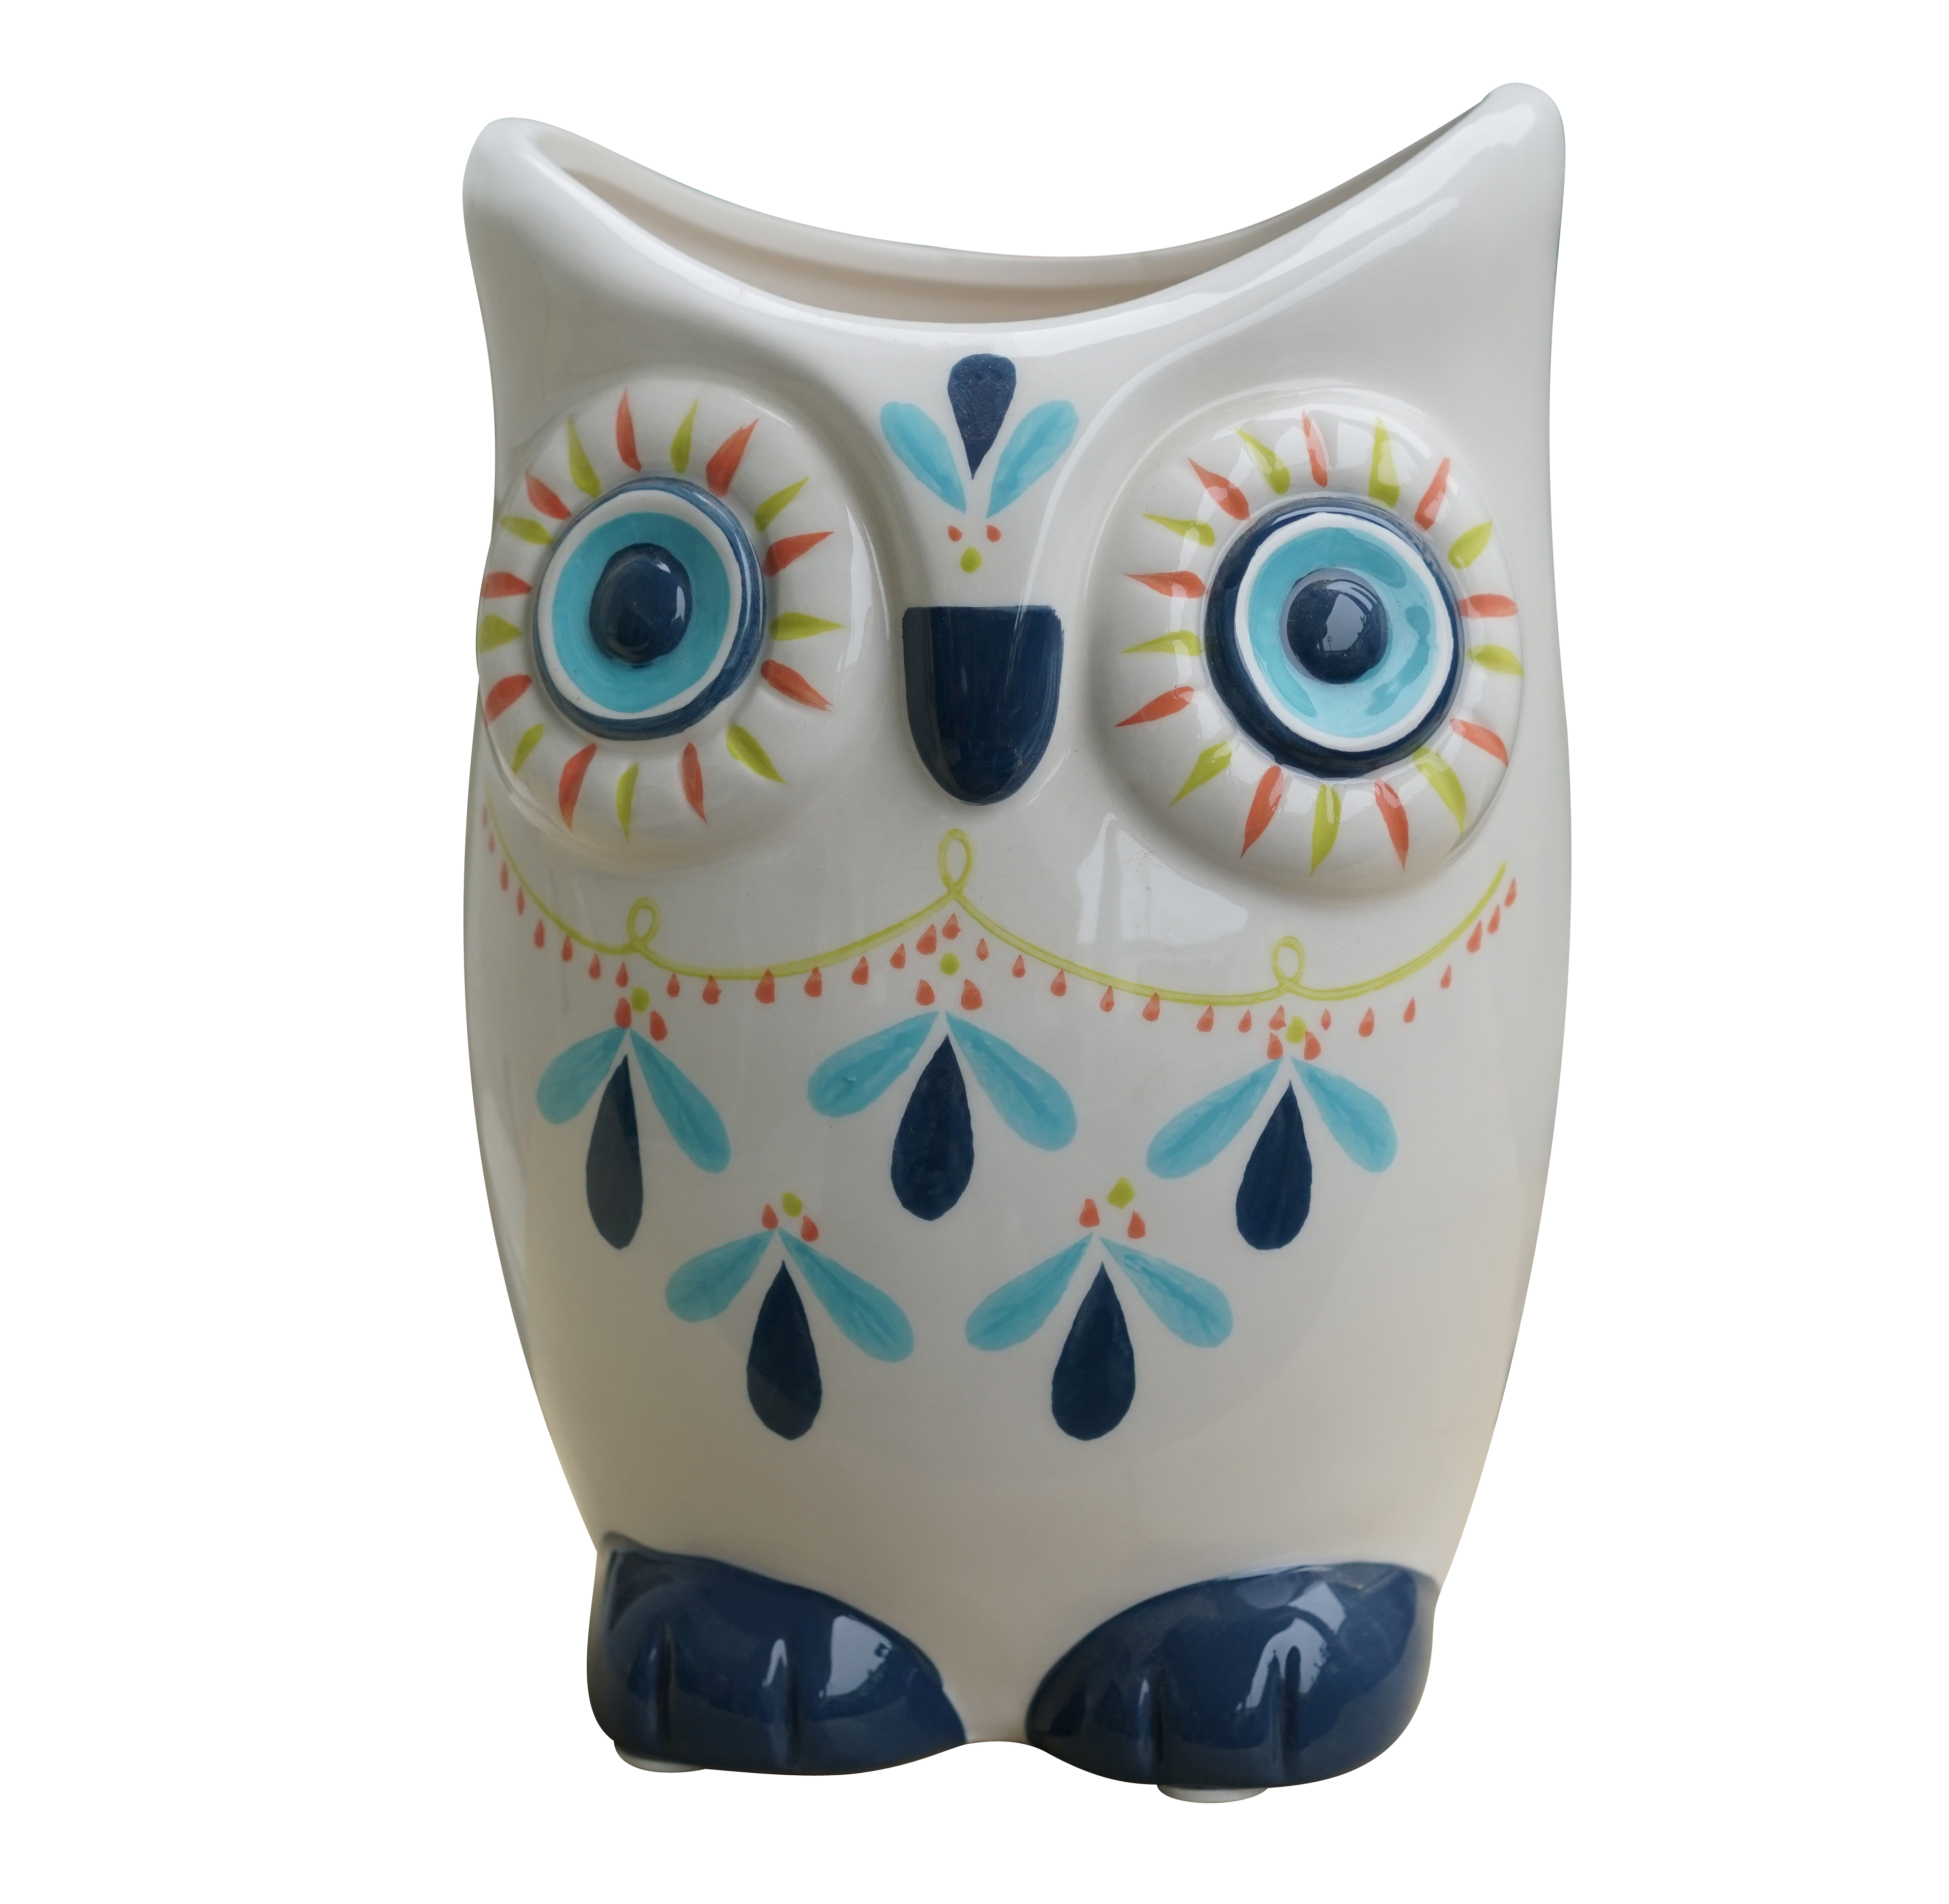 Better Homes&gardens Pottery-8in Owl Planter